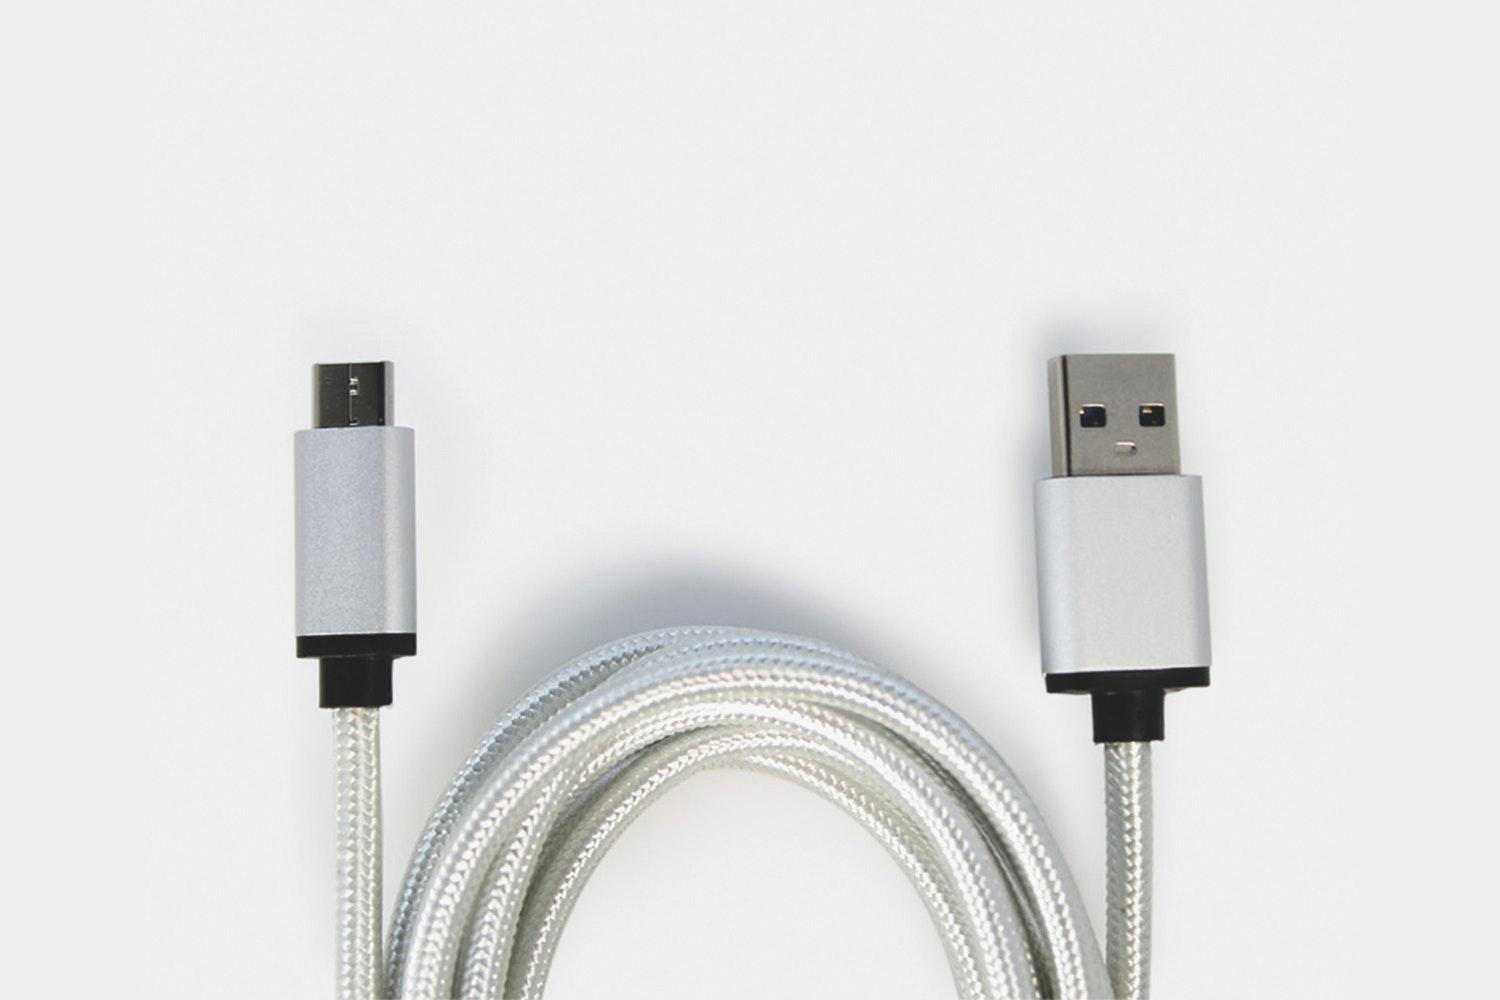 USB-C to USB 3.0 Cable – Silver (+ $9)